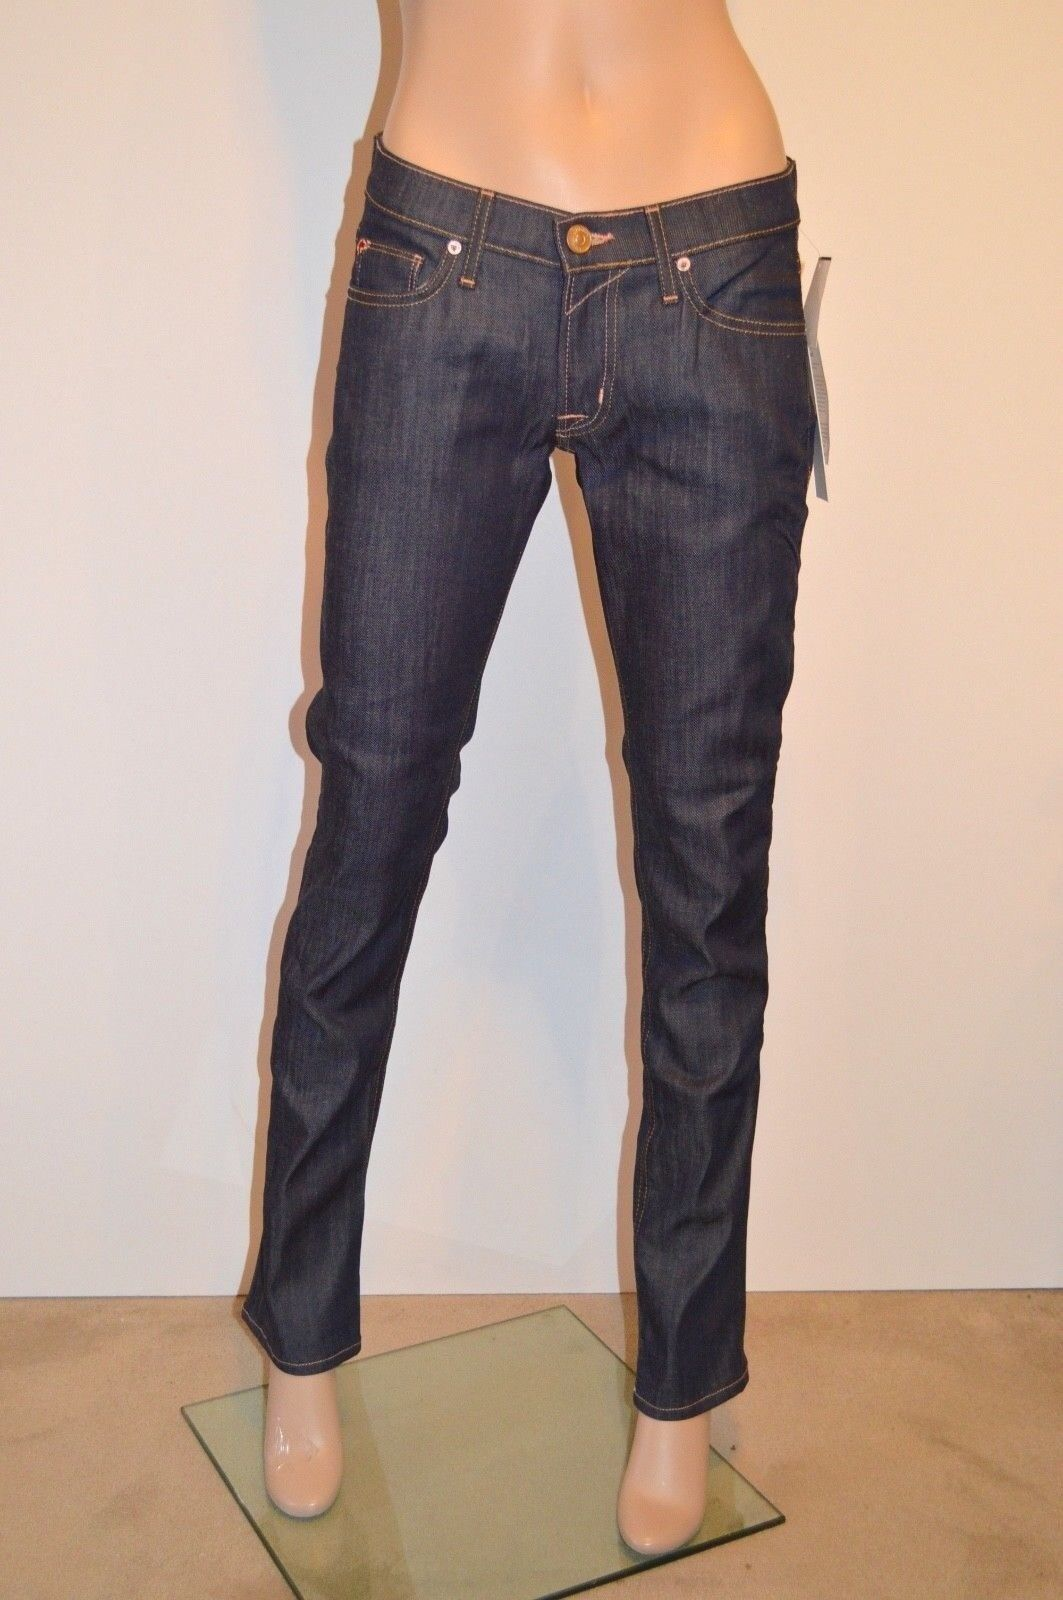 New  Hudson Crop Muse Crop Skinny Jeans w  5  Cuff Dark Denim sz 24